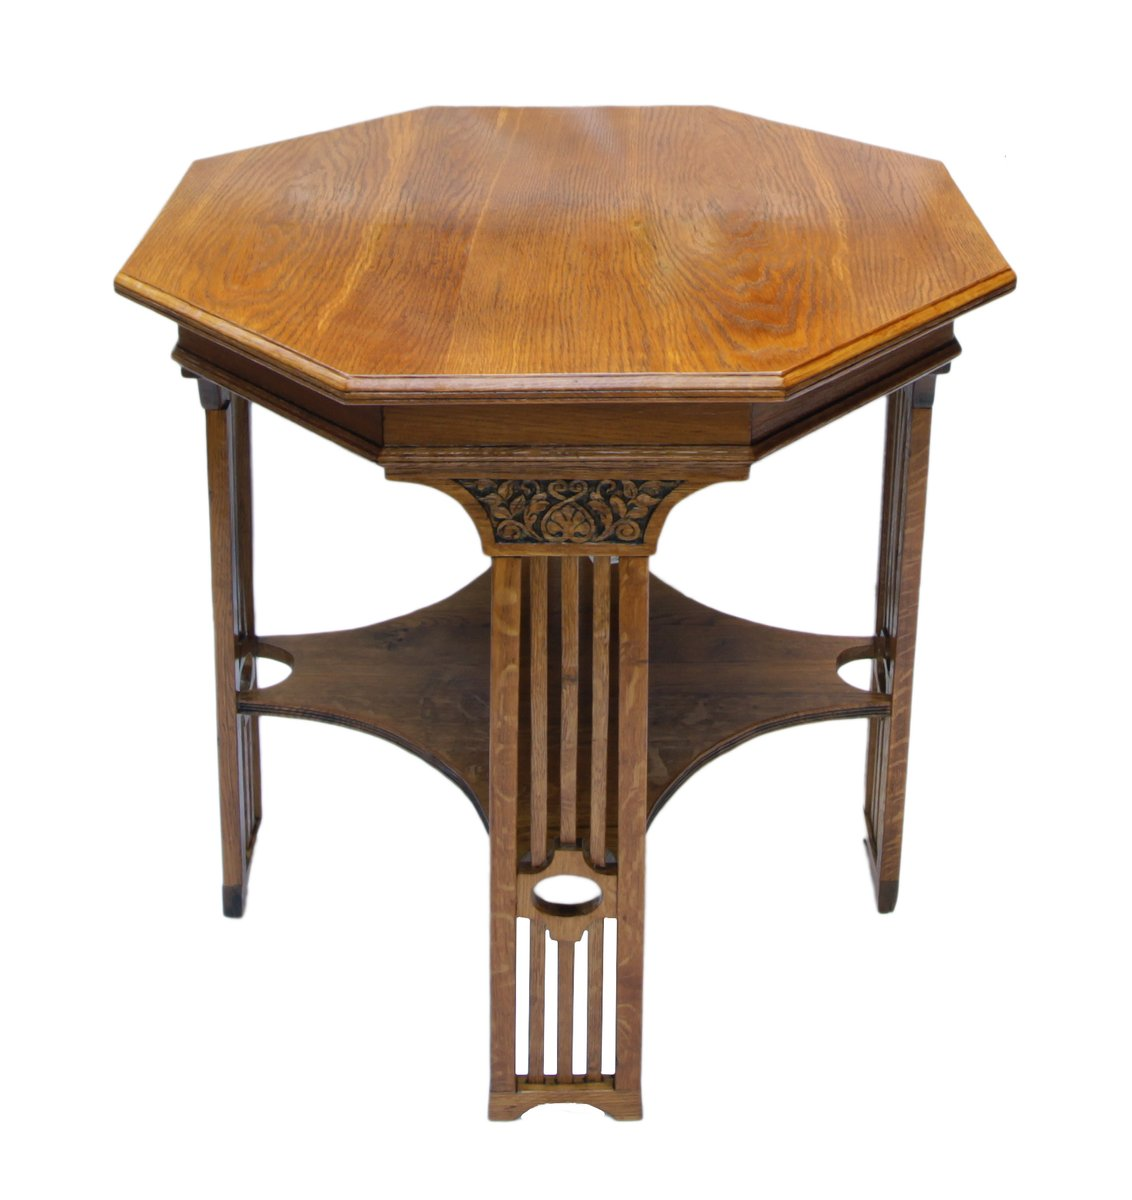 Art nouveau oak occasional table for sale at pamono for Occasional tables